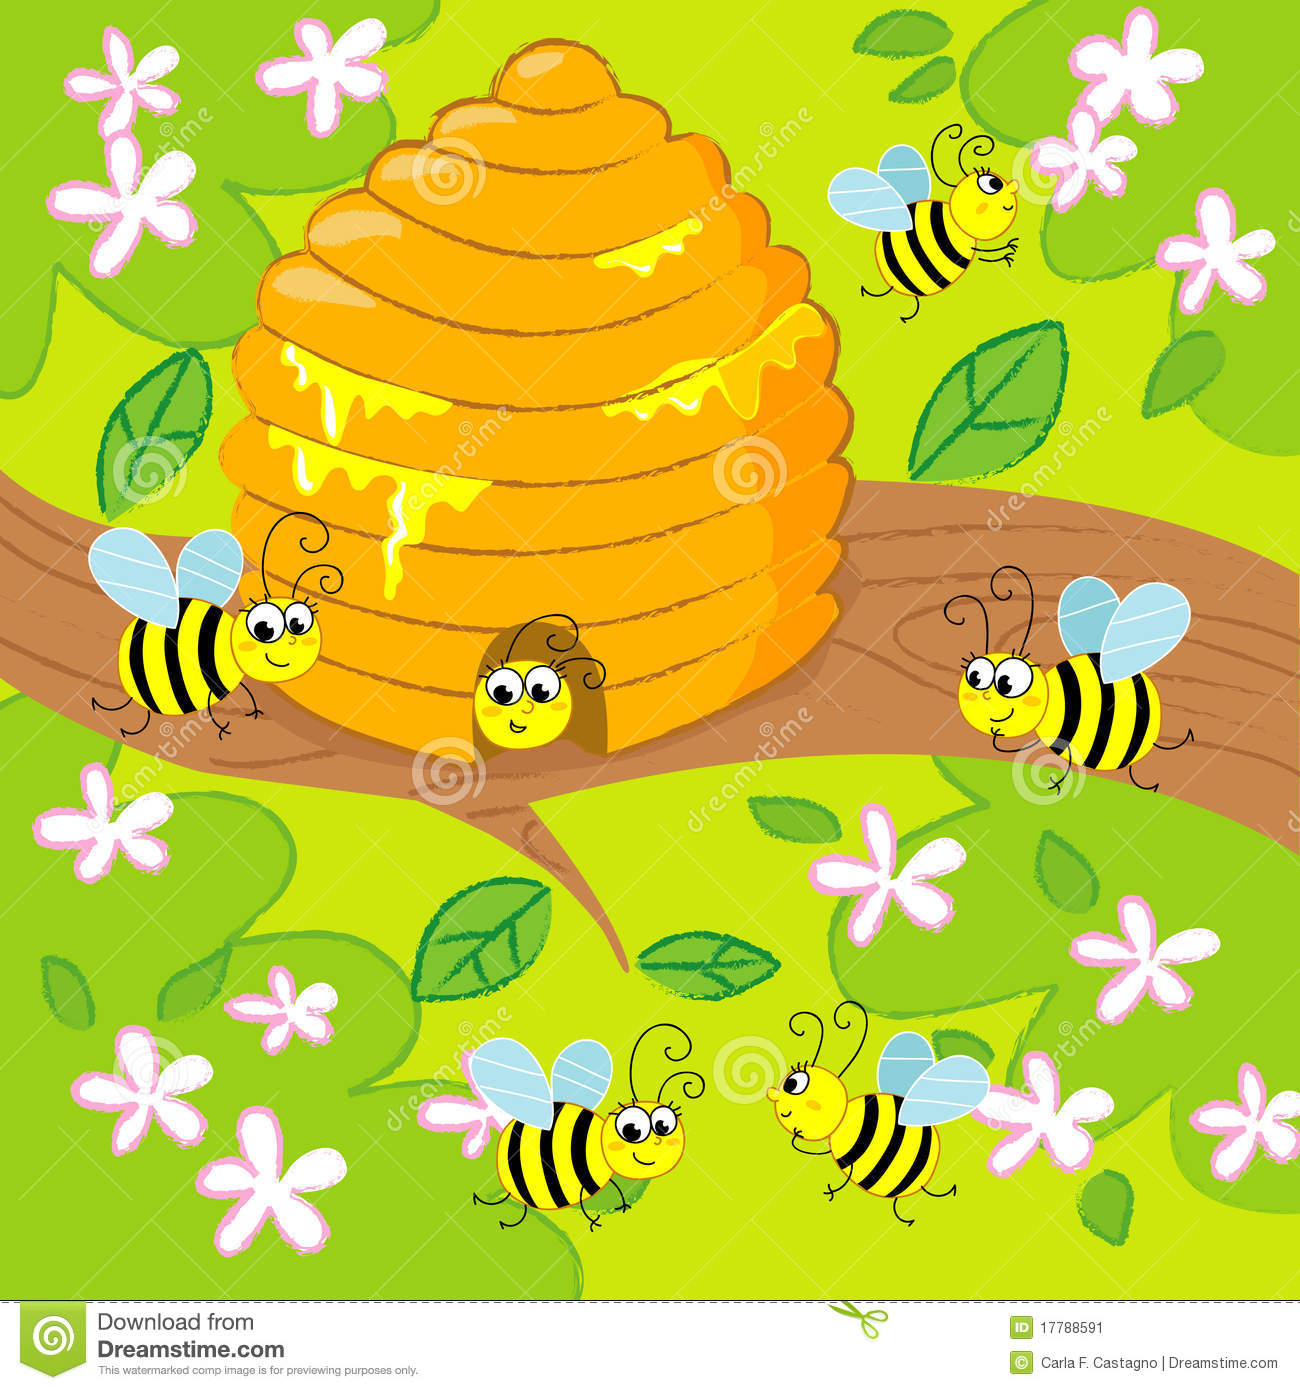 More similar stock images of ` Cartoon beehive `